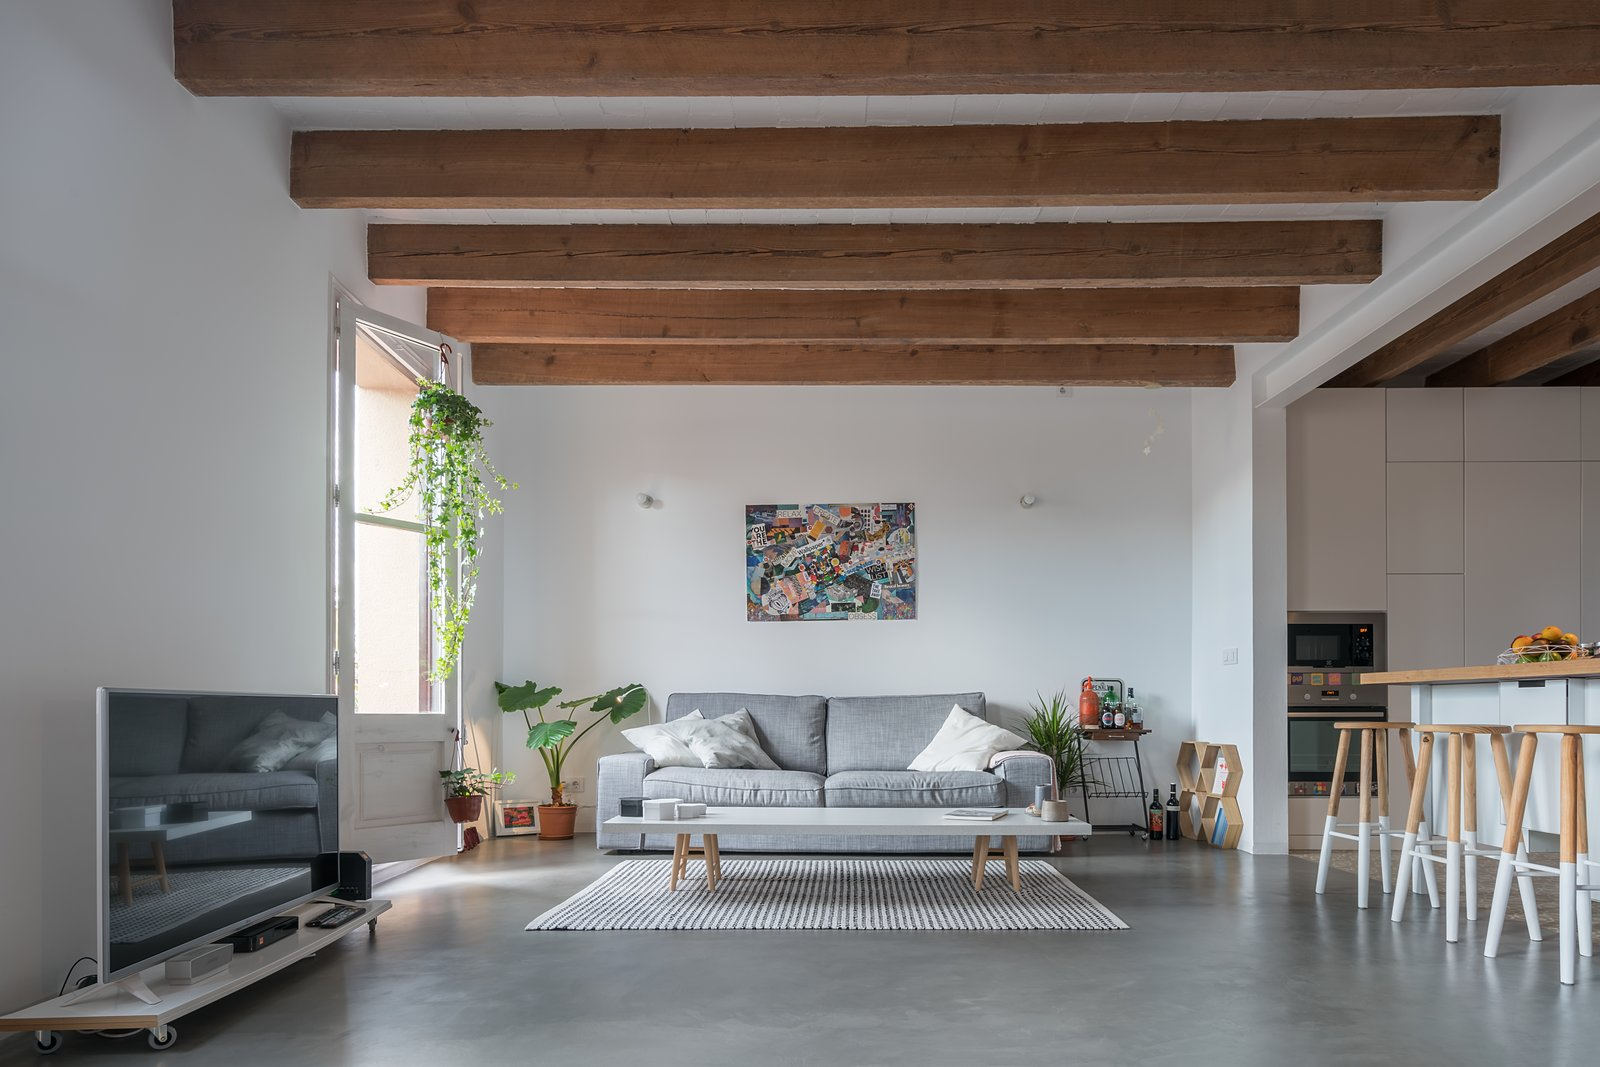 Tagged: Living Room, Sofa, Chair, Coffee Tables, and Concrete Floor.  Old Town Refurbishment by Habitan Architects